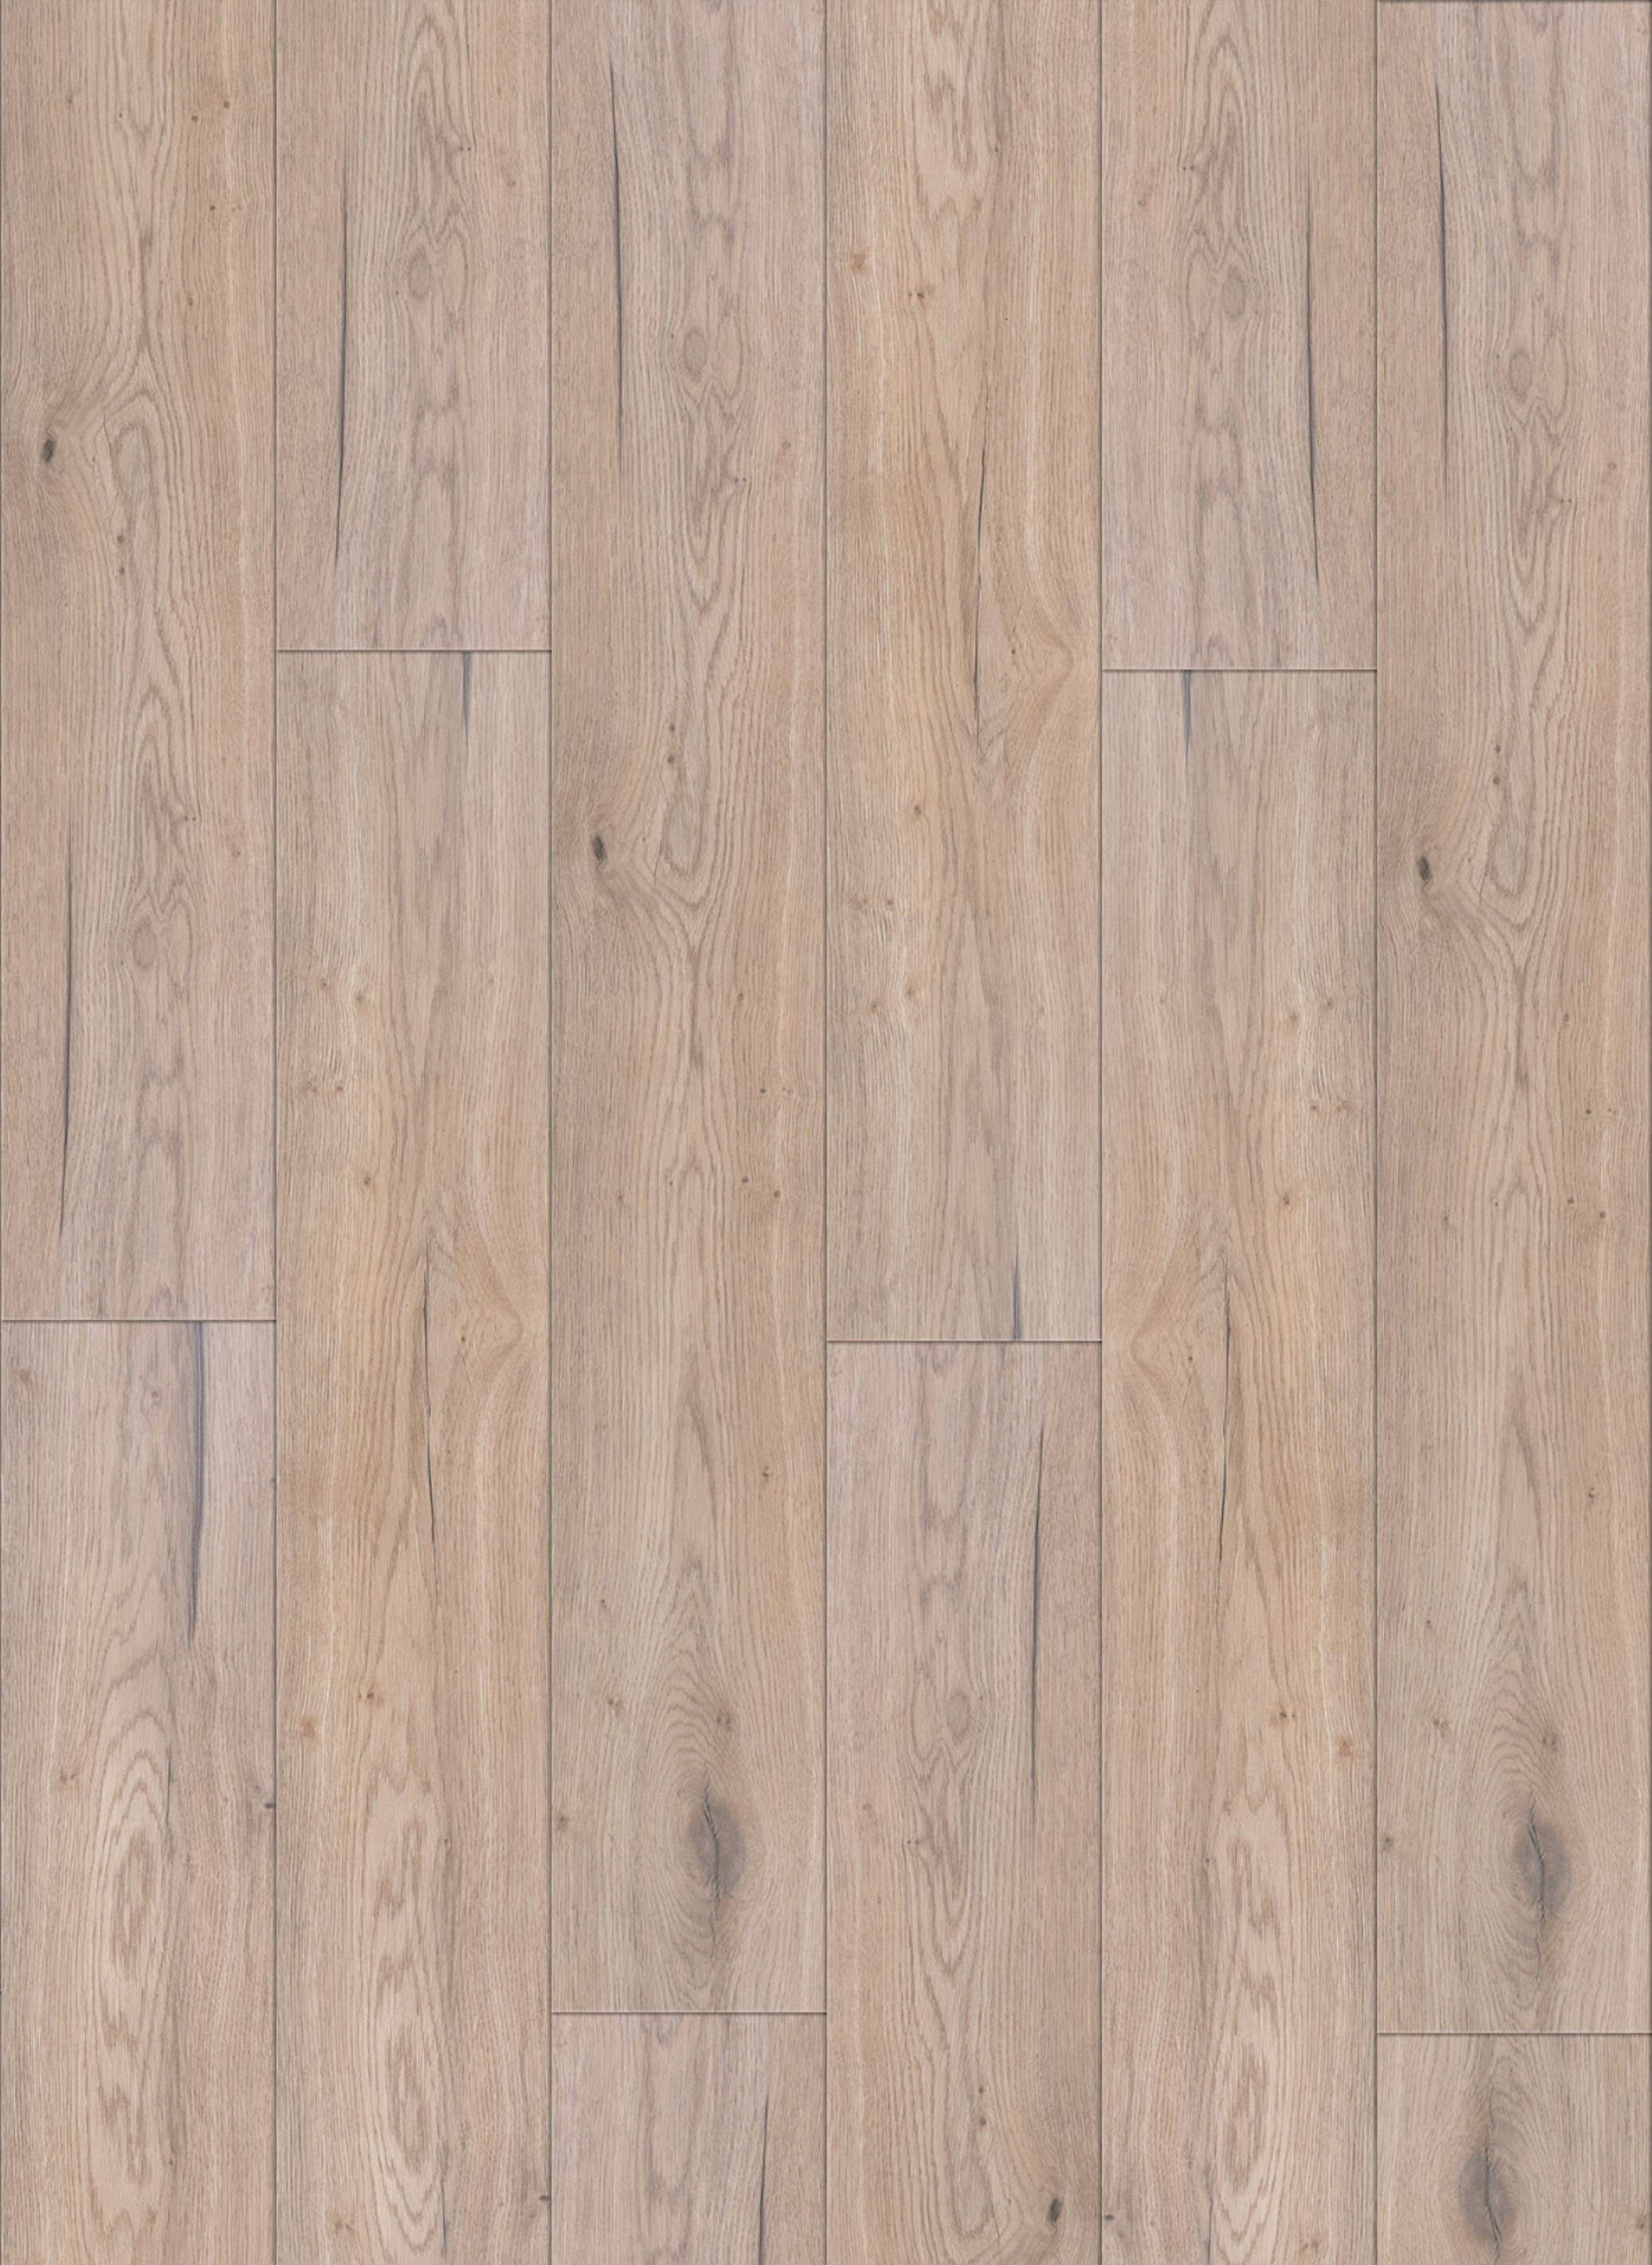 Durable Laminate Flooring Awesome Triton 7 5